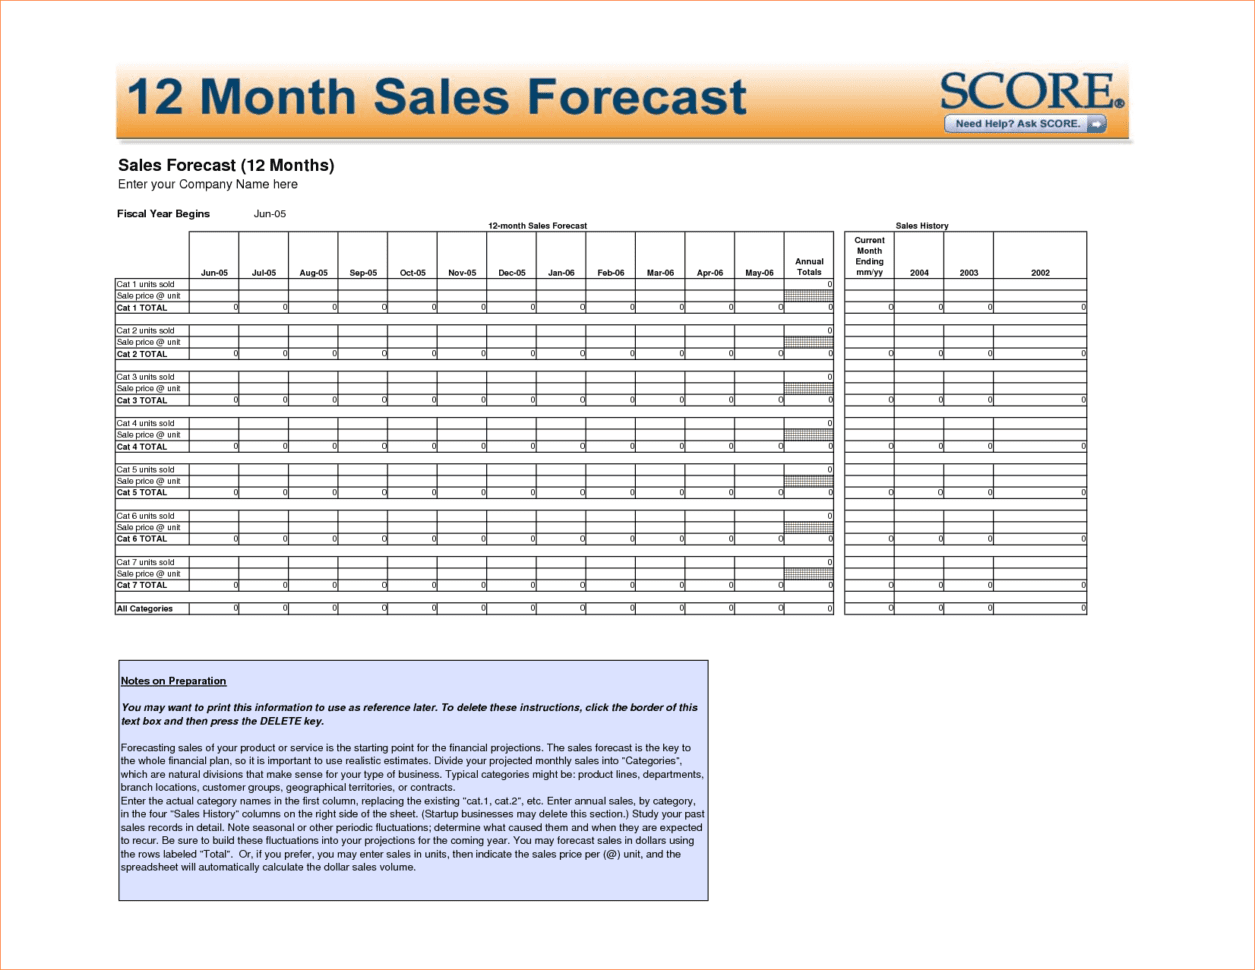 5 Year Cash Flow Template 12 Month Financial Projection Template Sales Forecast Example 5 Year Financial Projection Template Sales Forecast Sheet Template Sales Forecast Model Sales Forecast Template  Sales Forecast Template Sales Forecast Spreadsheet Template Spreadsheet Templates for Busines